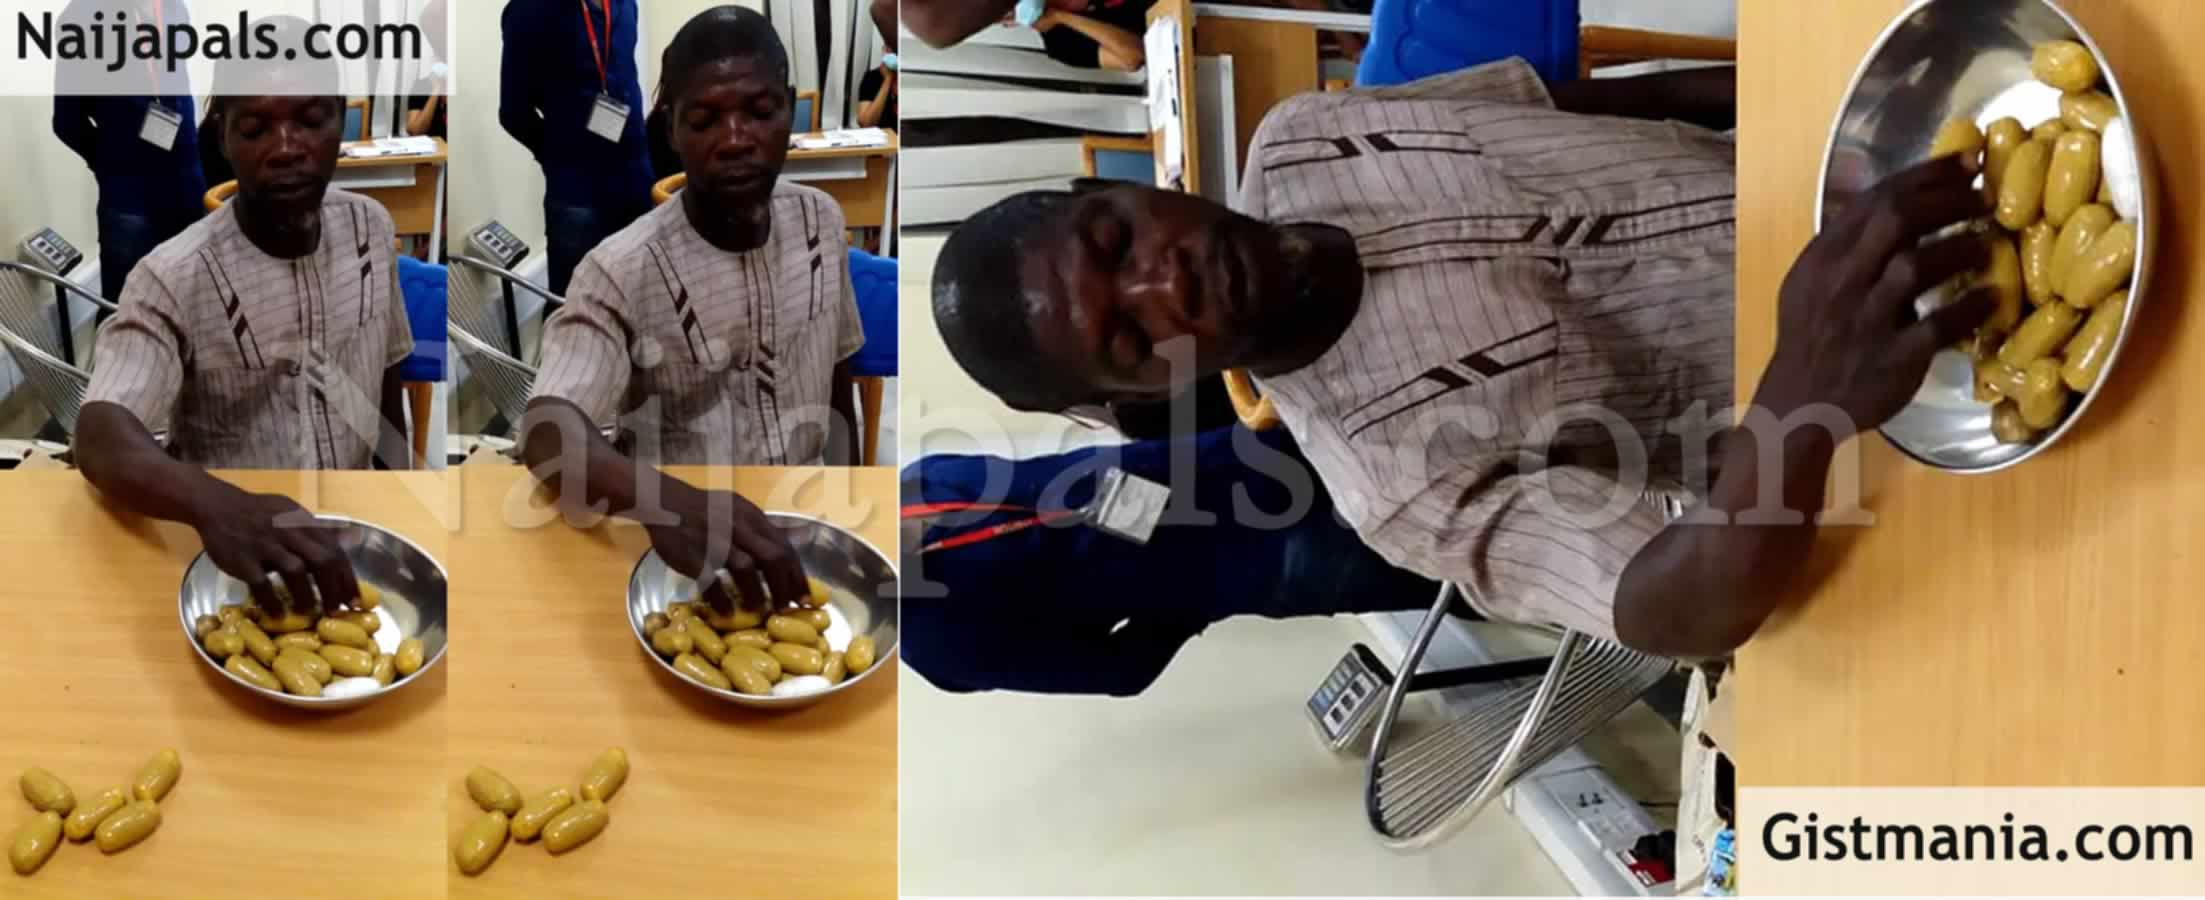 JUST IN! South African Police Arrest Three Nigerian Drug Barons Who Tried To Bribe Them -Photos